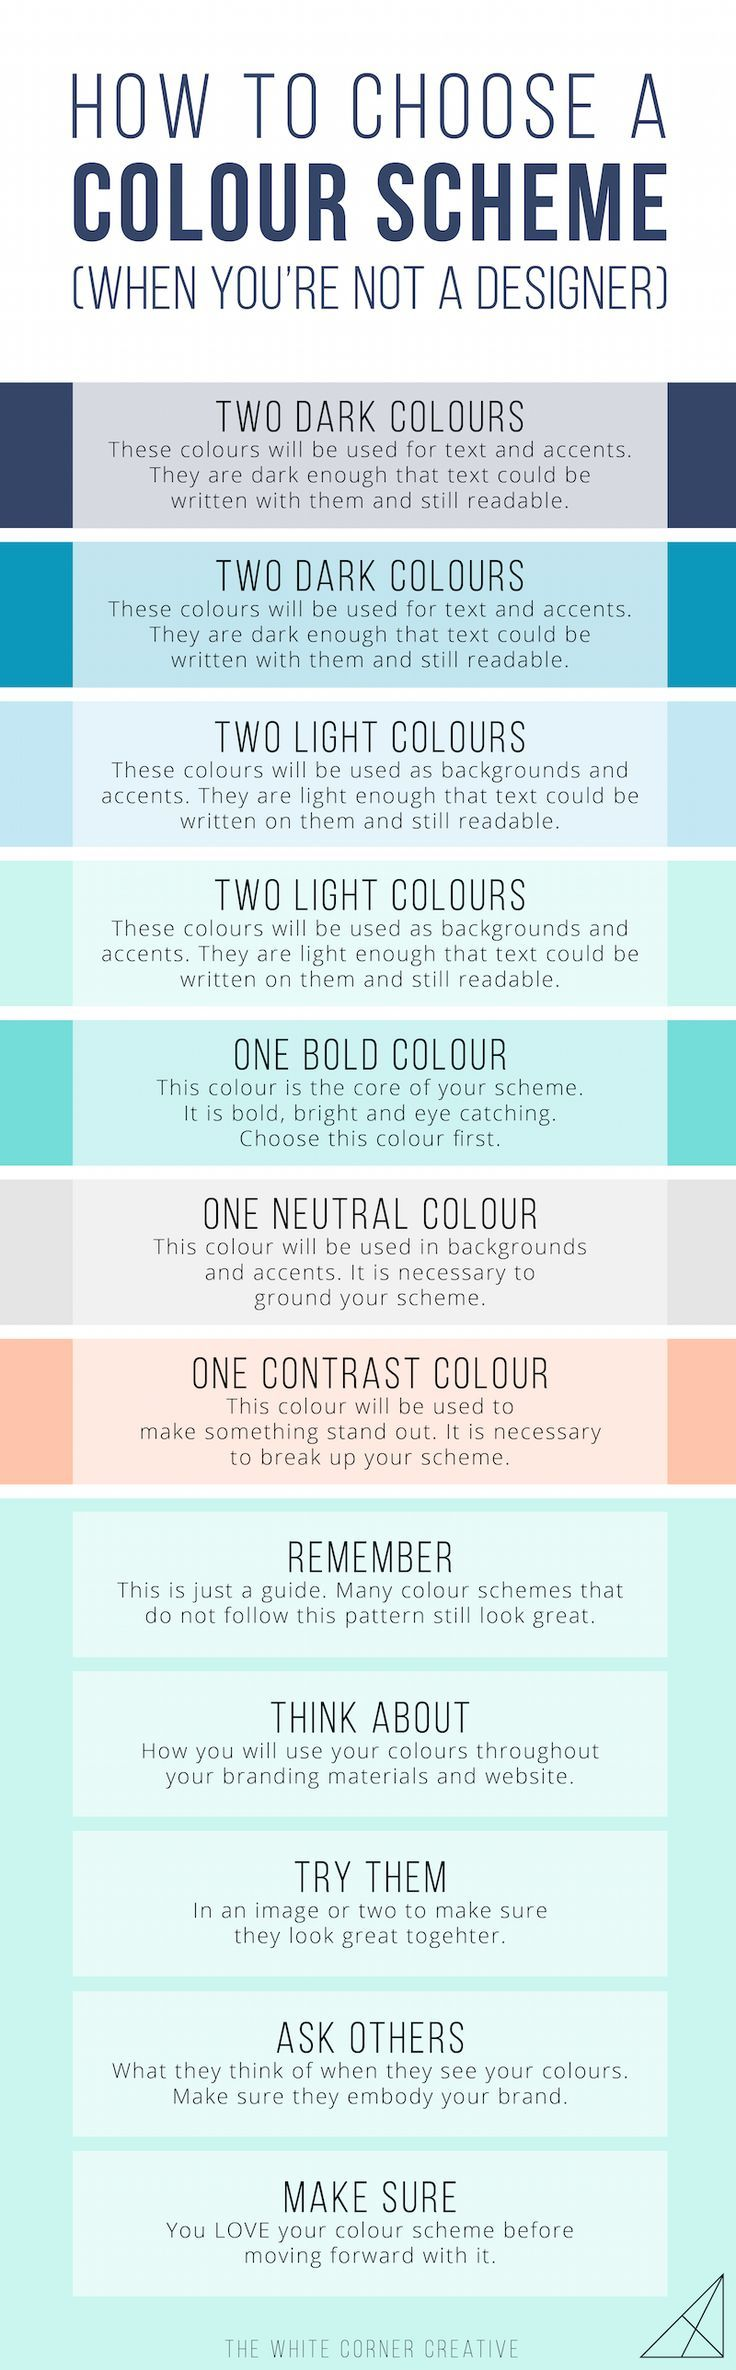 How to Choose a Colour Scheme (When You're not a Designer